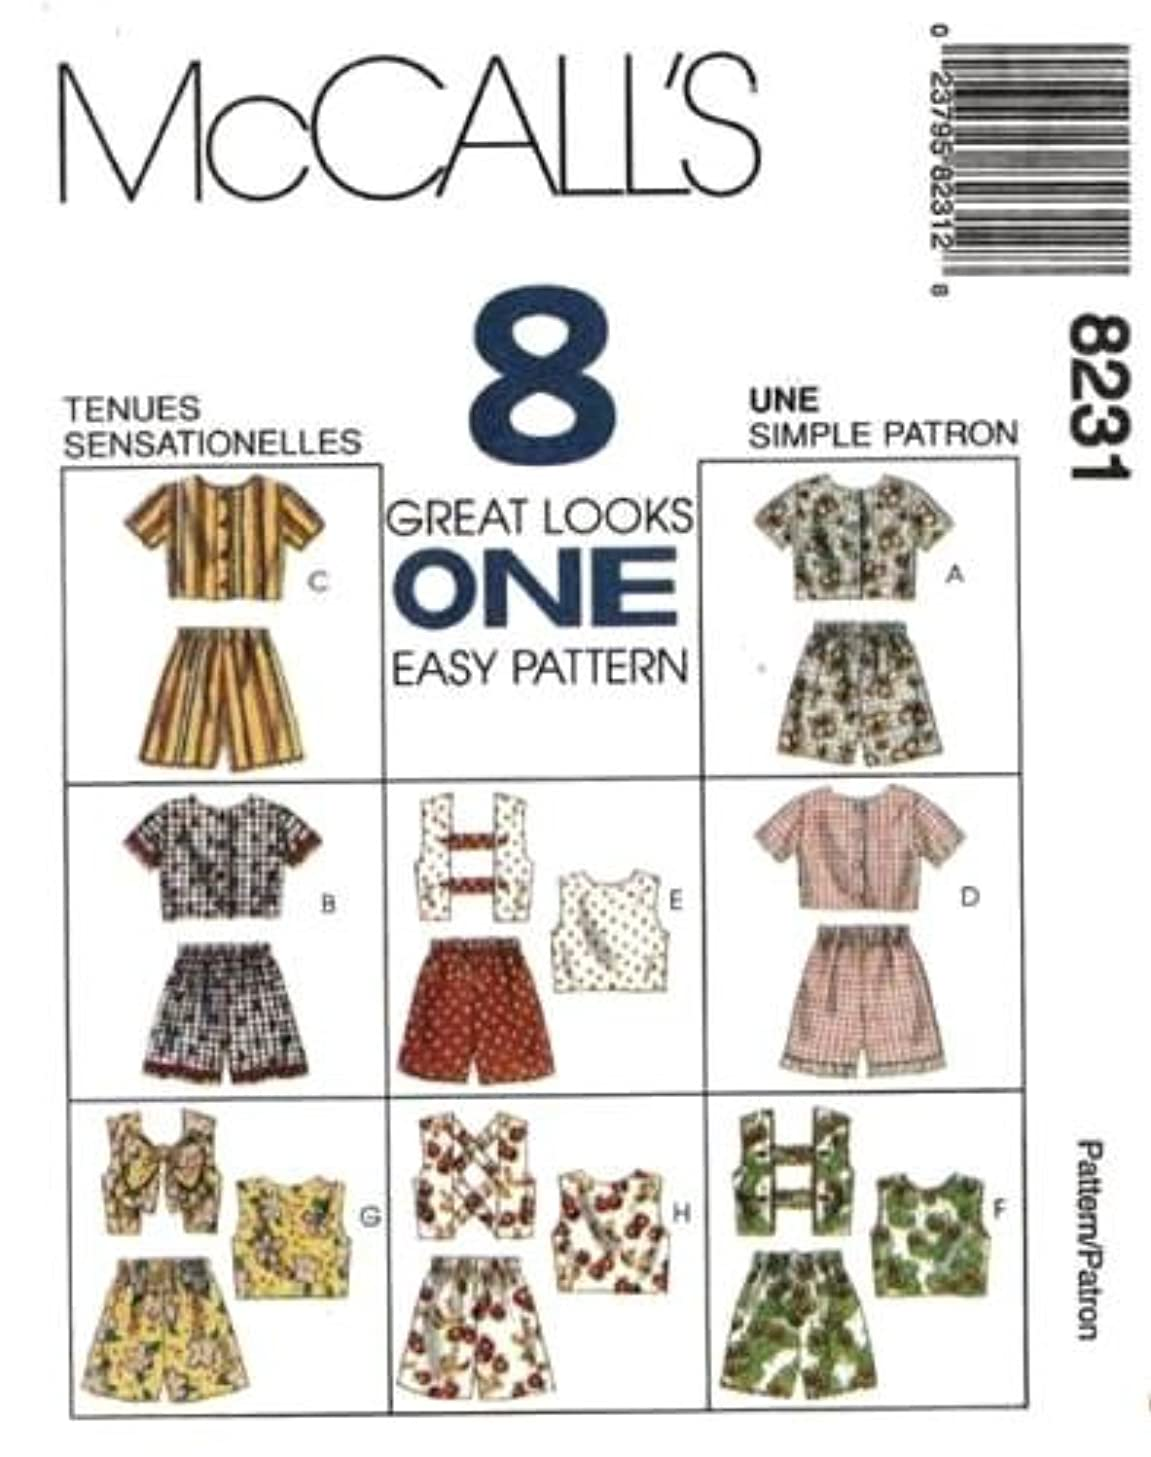 McCall's Sewing Pattern 8231 Girls' Tops and Pull-on Shorts - 8 Looks, CJ (Size 10 12 14)